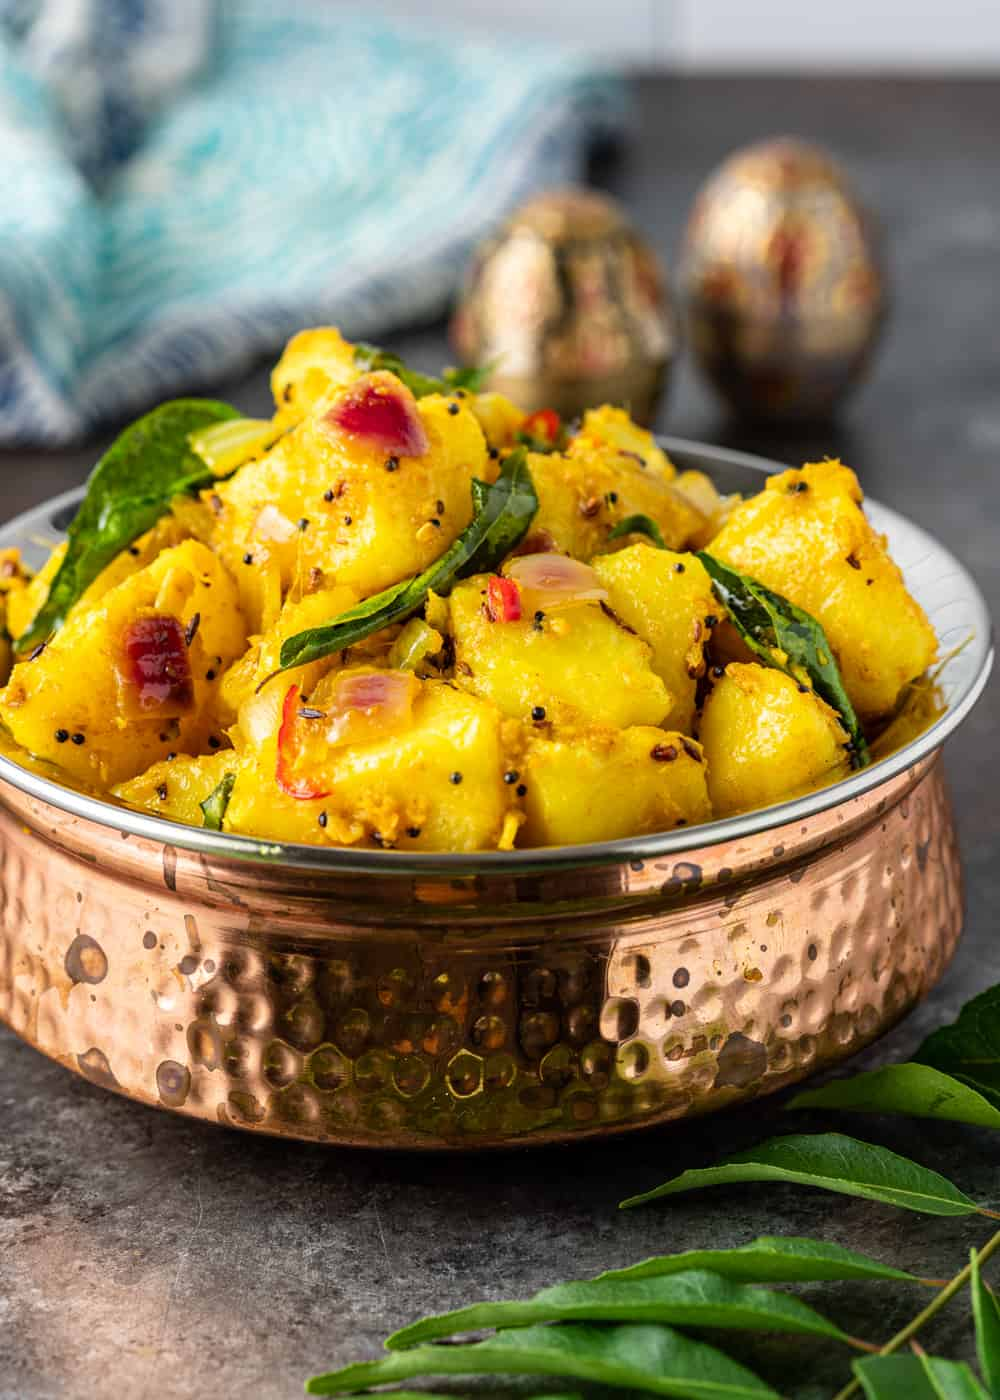 side view: bowl of Indian potatoes side dish known as allo masala